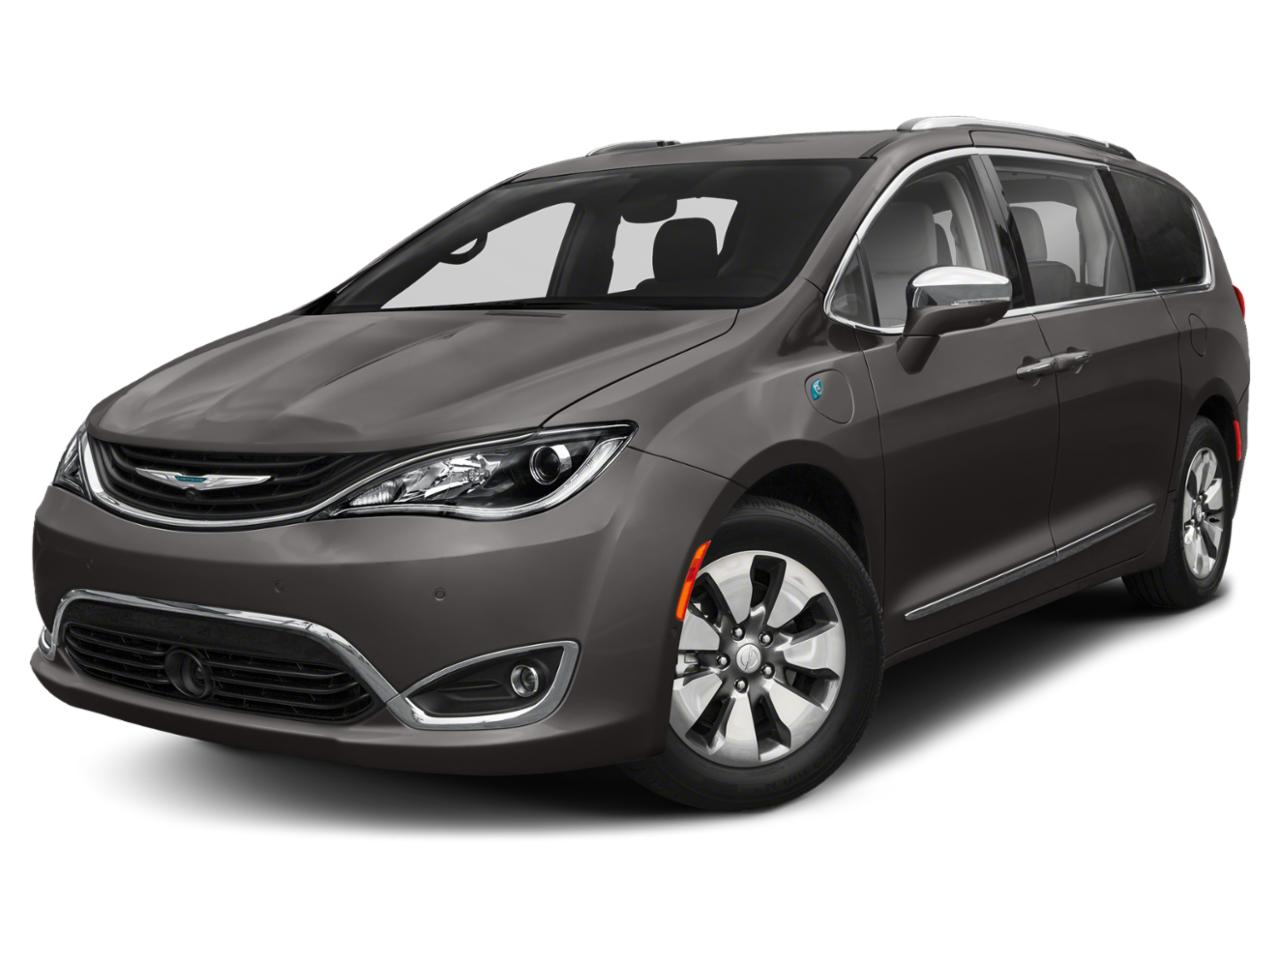 2018 Chrysler Pacifica Vehicle Photo in Austin, TX 78759